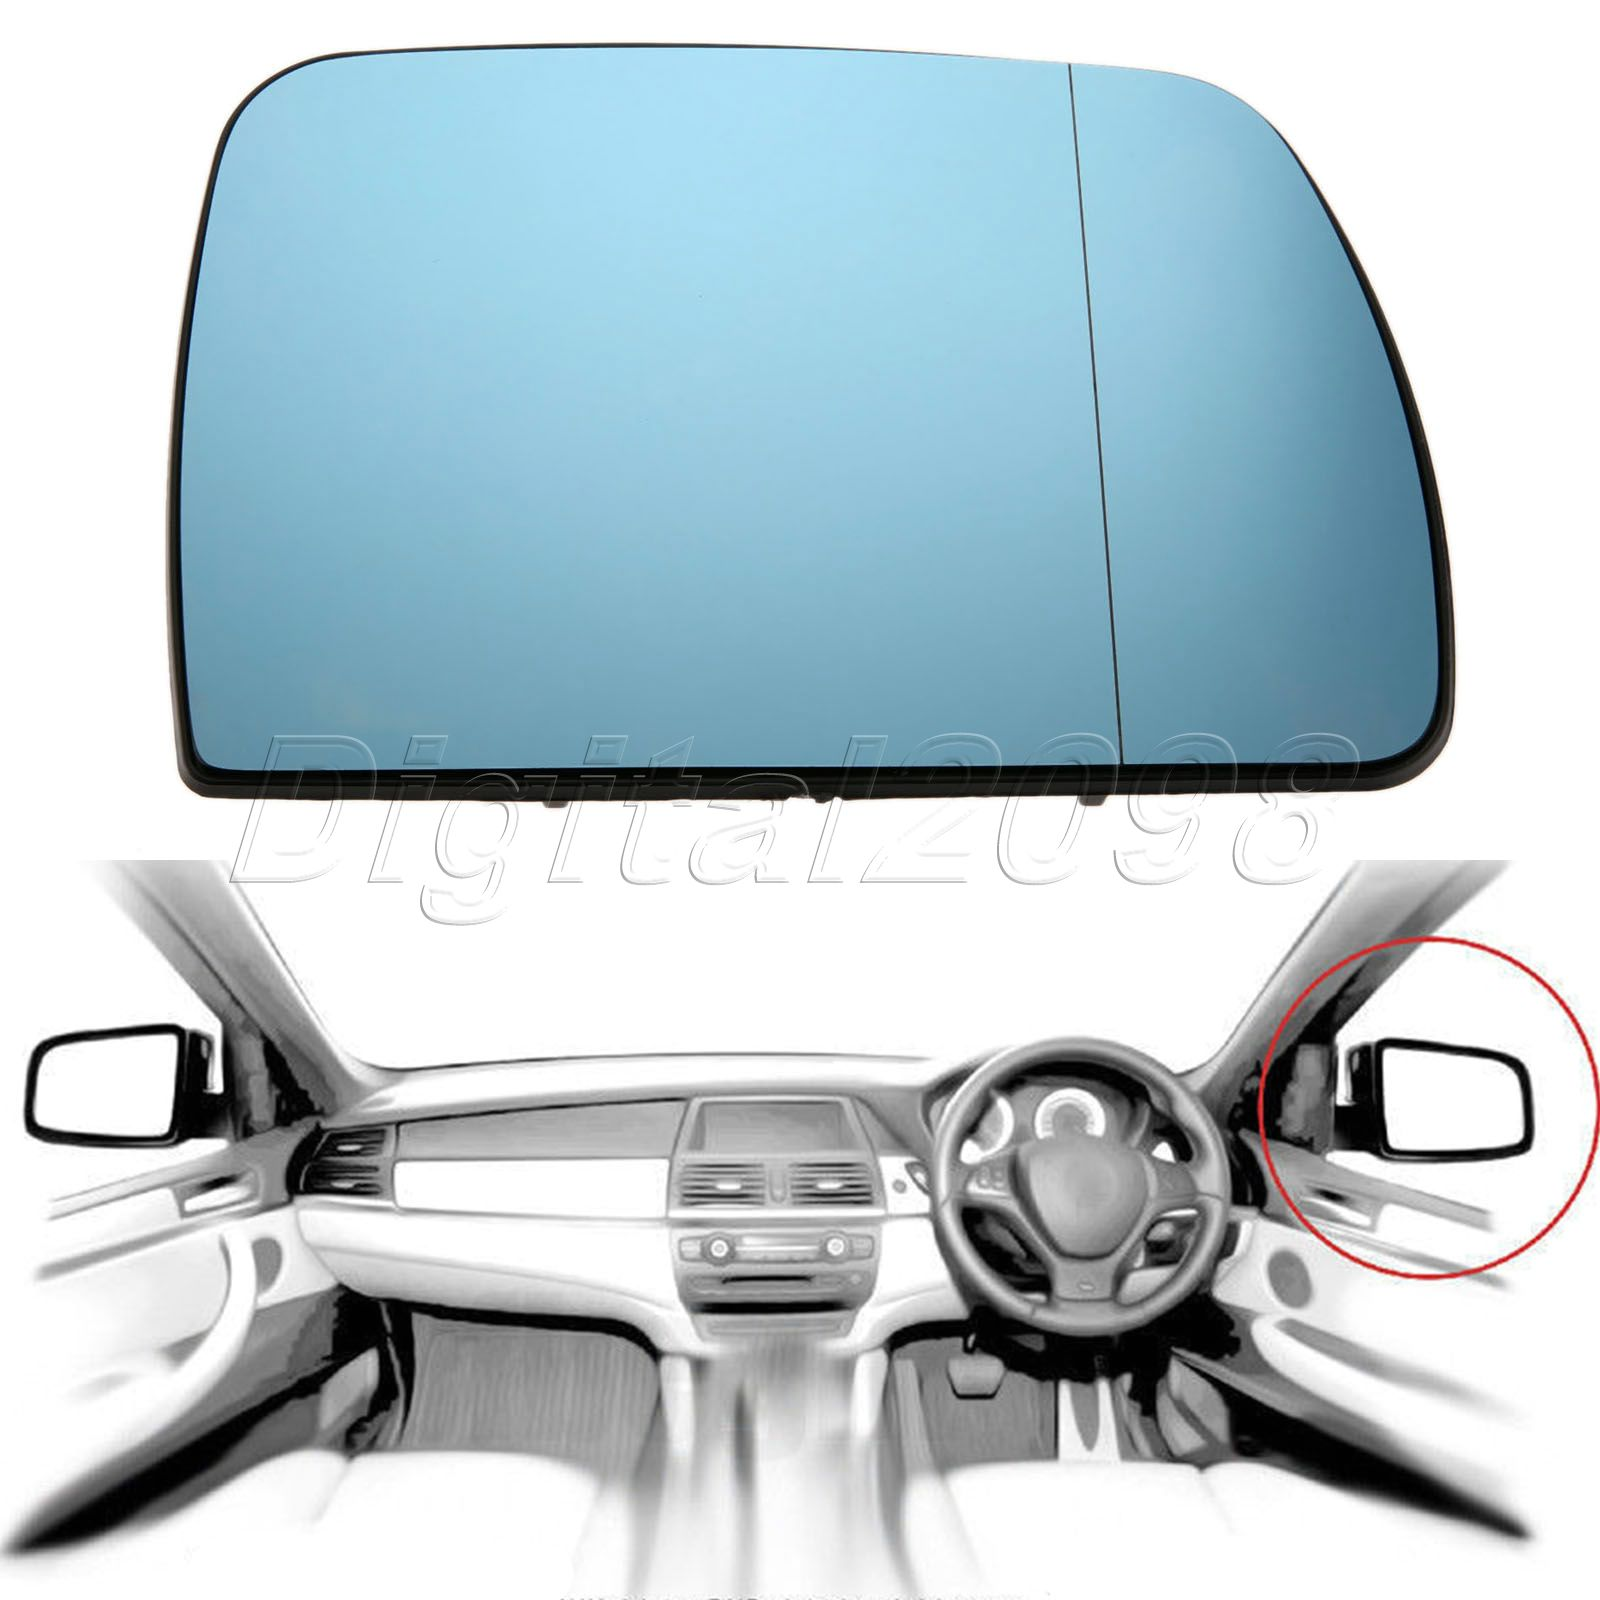 1pc blue door wing mirror glass heated right side for bmw x5 e53 1pc blue door wing mirror glass heated right side for bmw x5 e53 1999 2006 2005 car rearview heating tinted mirror car styling in mirror covers from planetlyrics Image collections